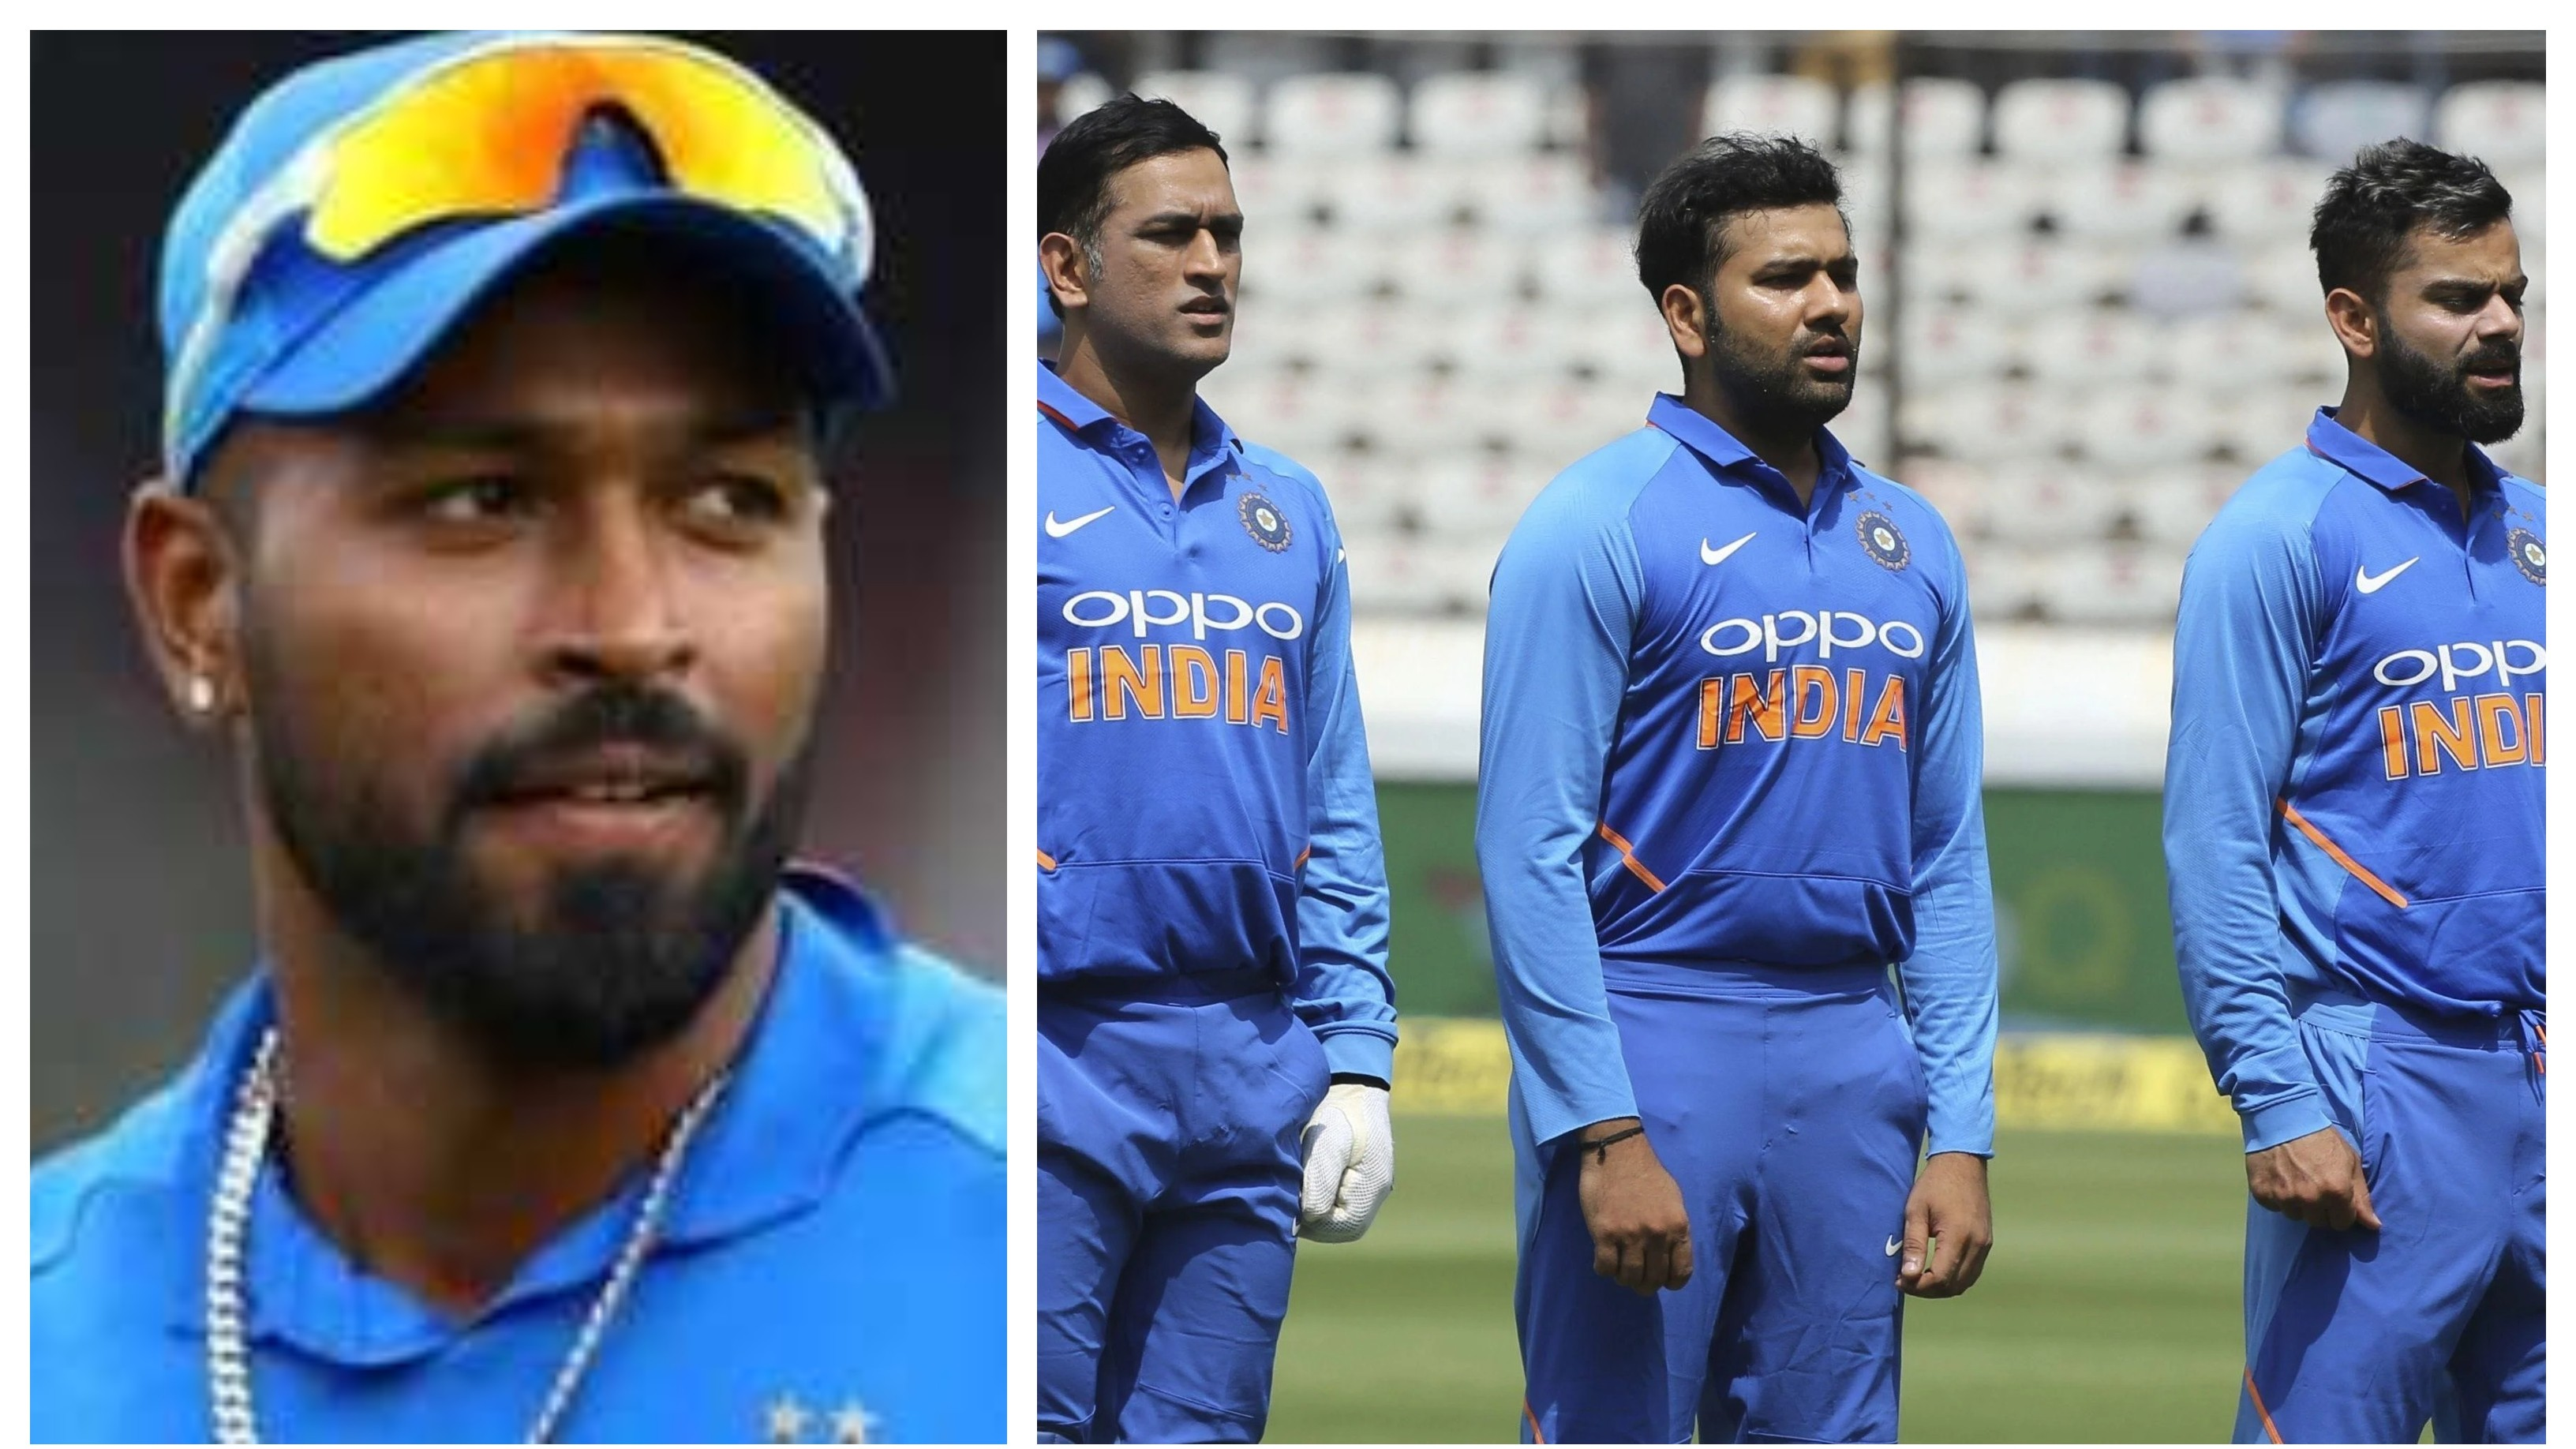 Hardik Pandya gives pep talk to Baroda youngsters; shares success stories of Kohli, Dhoni, Rohit with them